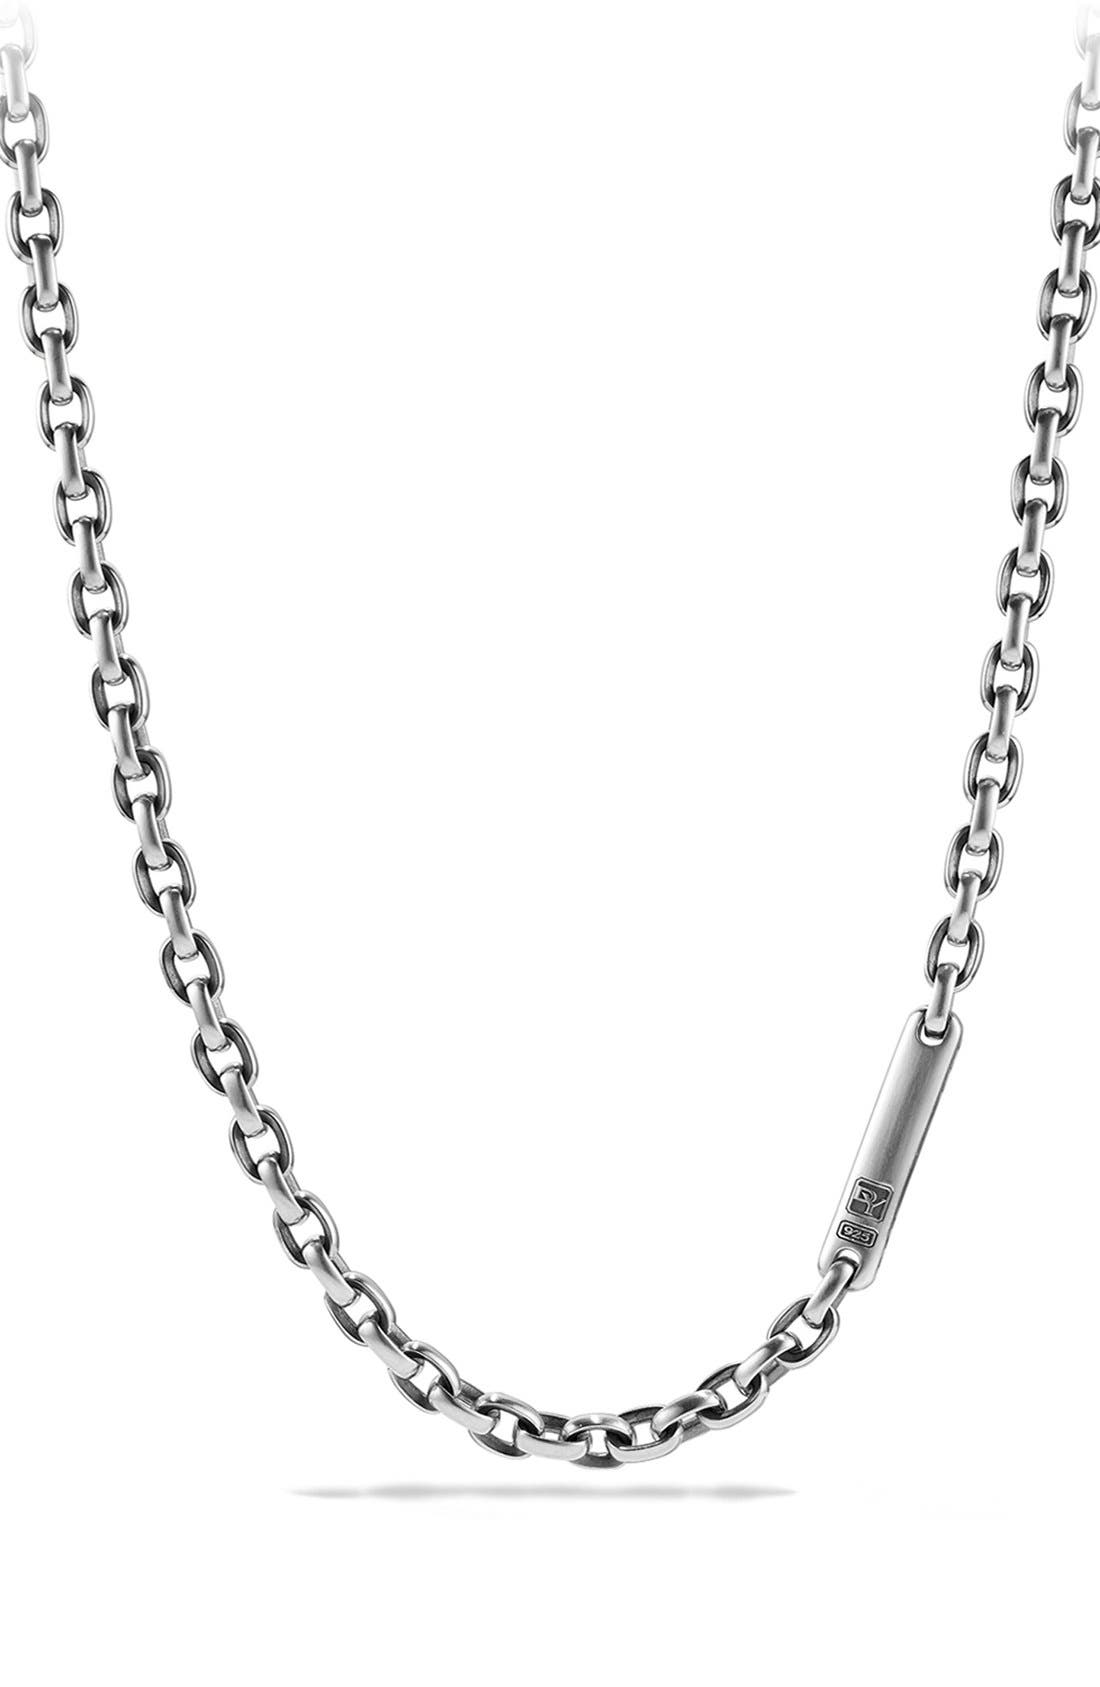 DAVID YURMAN Streamline Chain Necklace